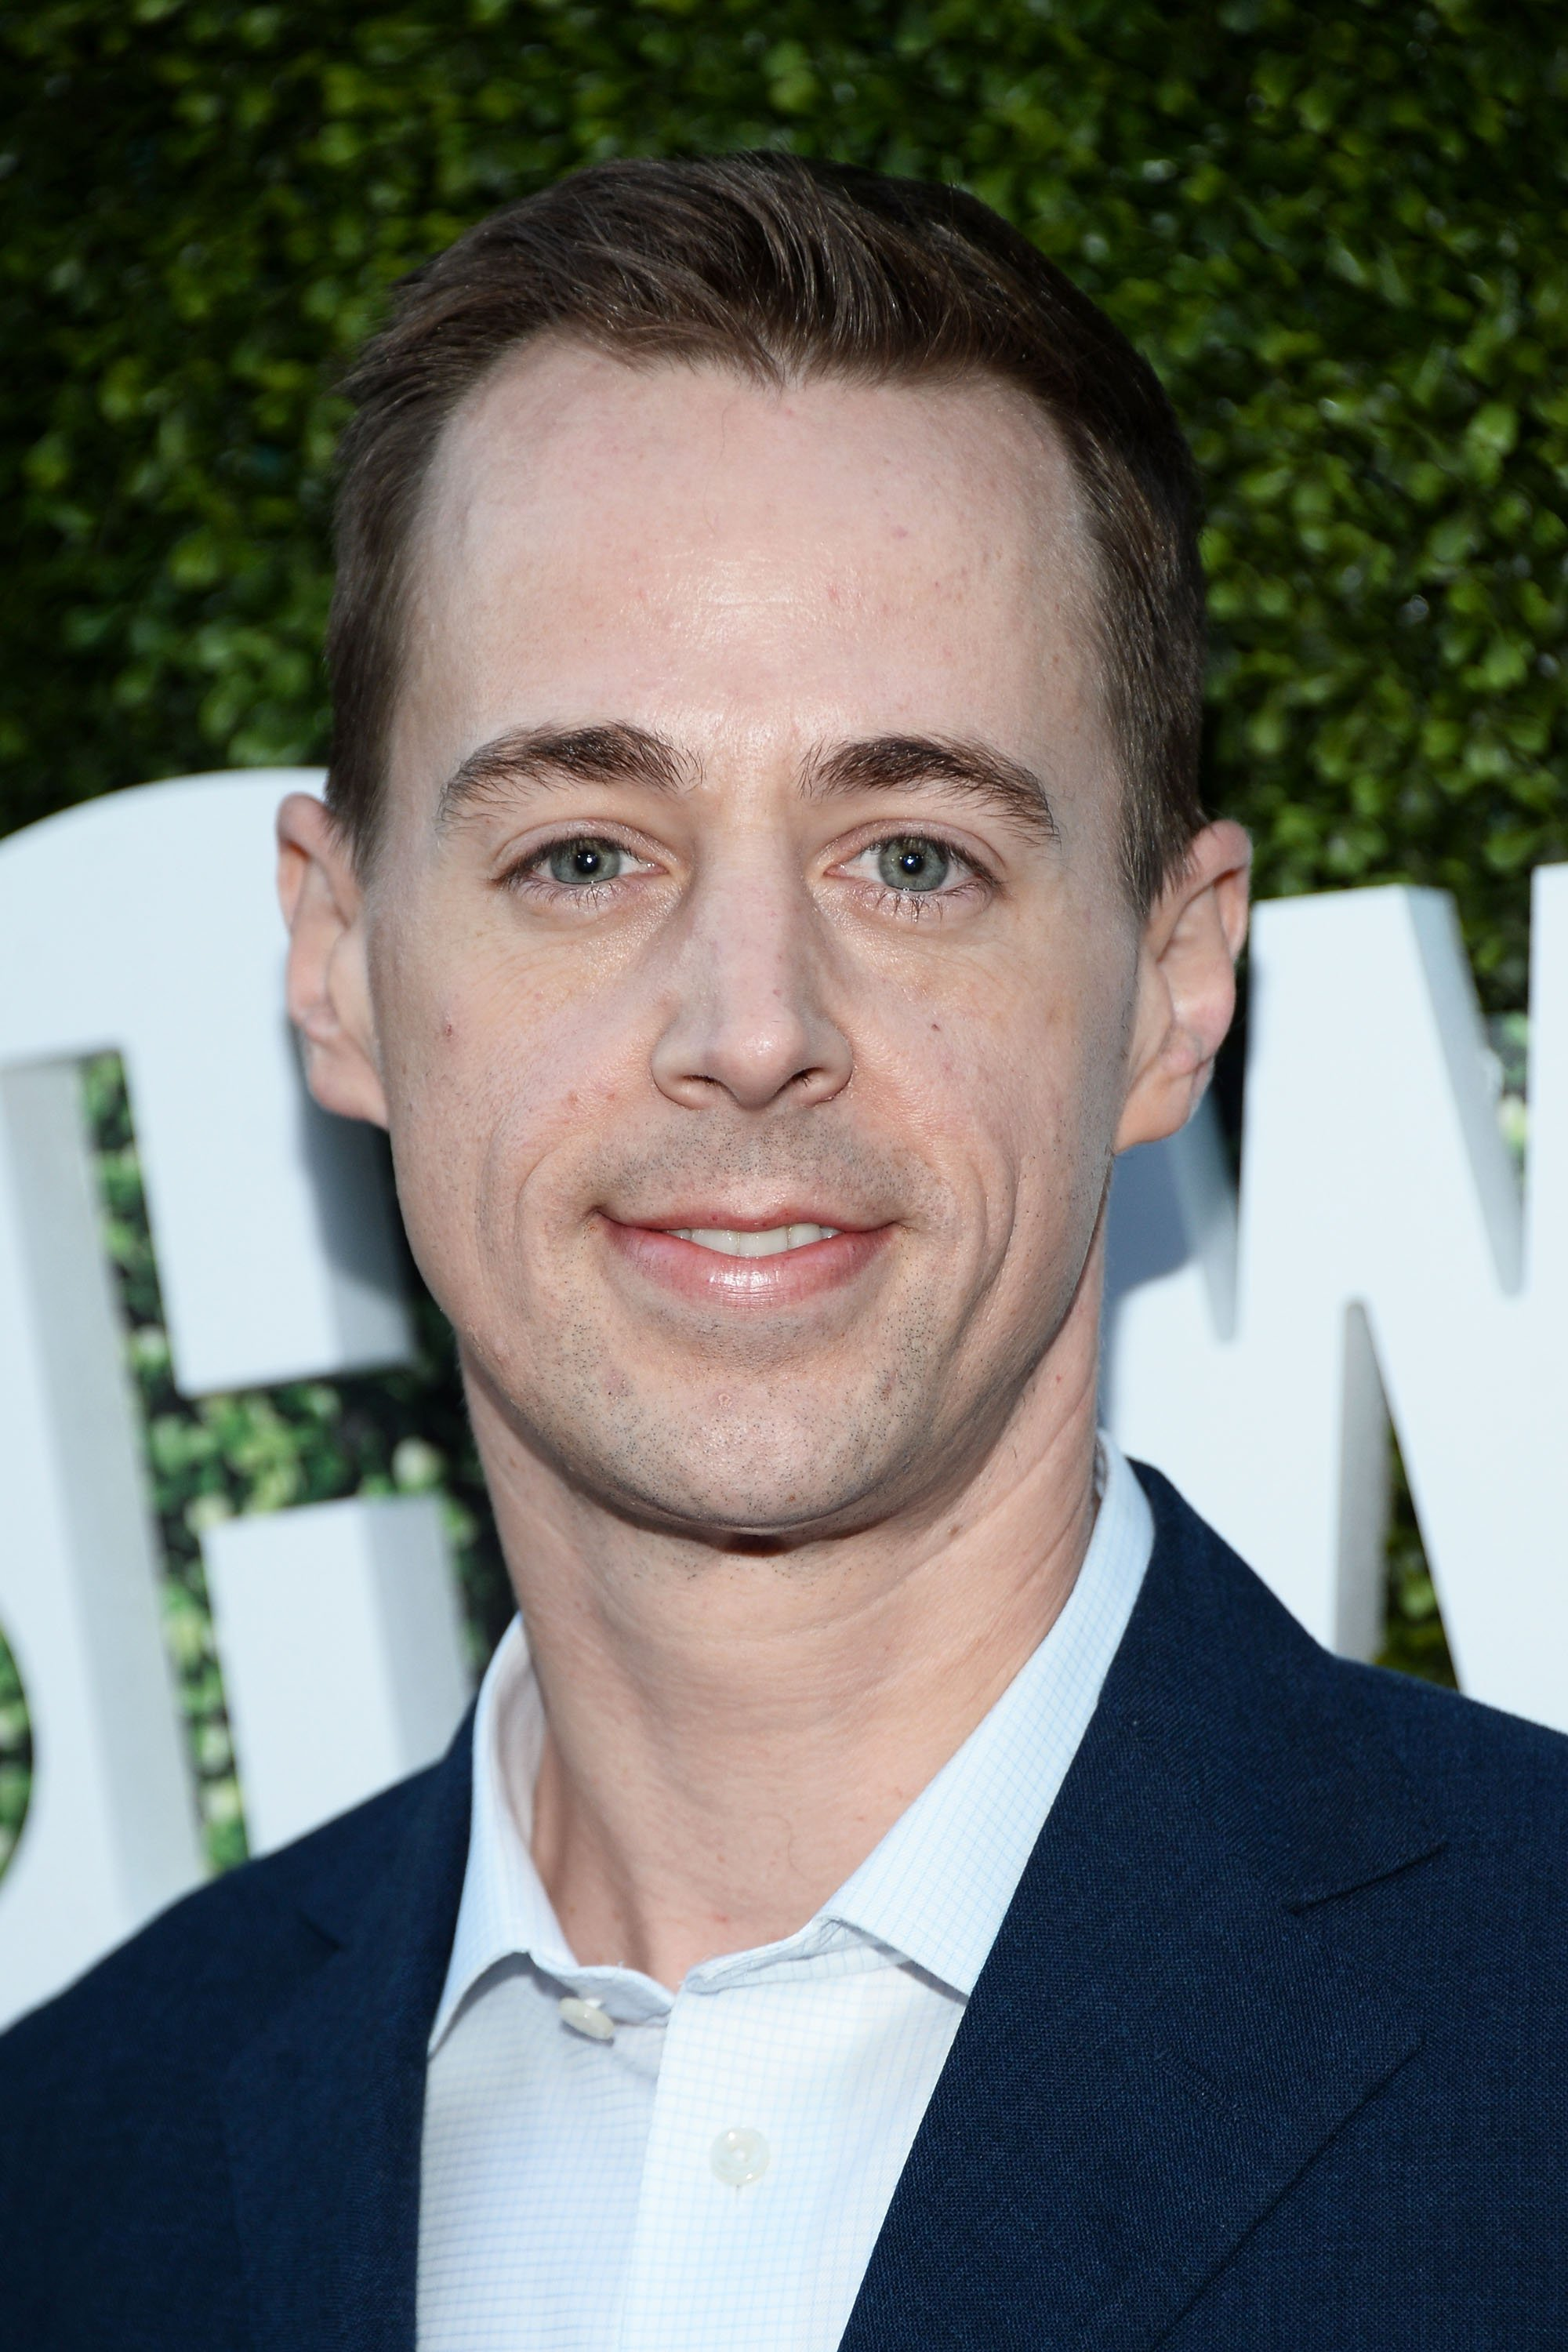 Sean Murray am 10. August, 2016 in West Hollywood, Kalifornien | Quelle: Getty Images